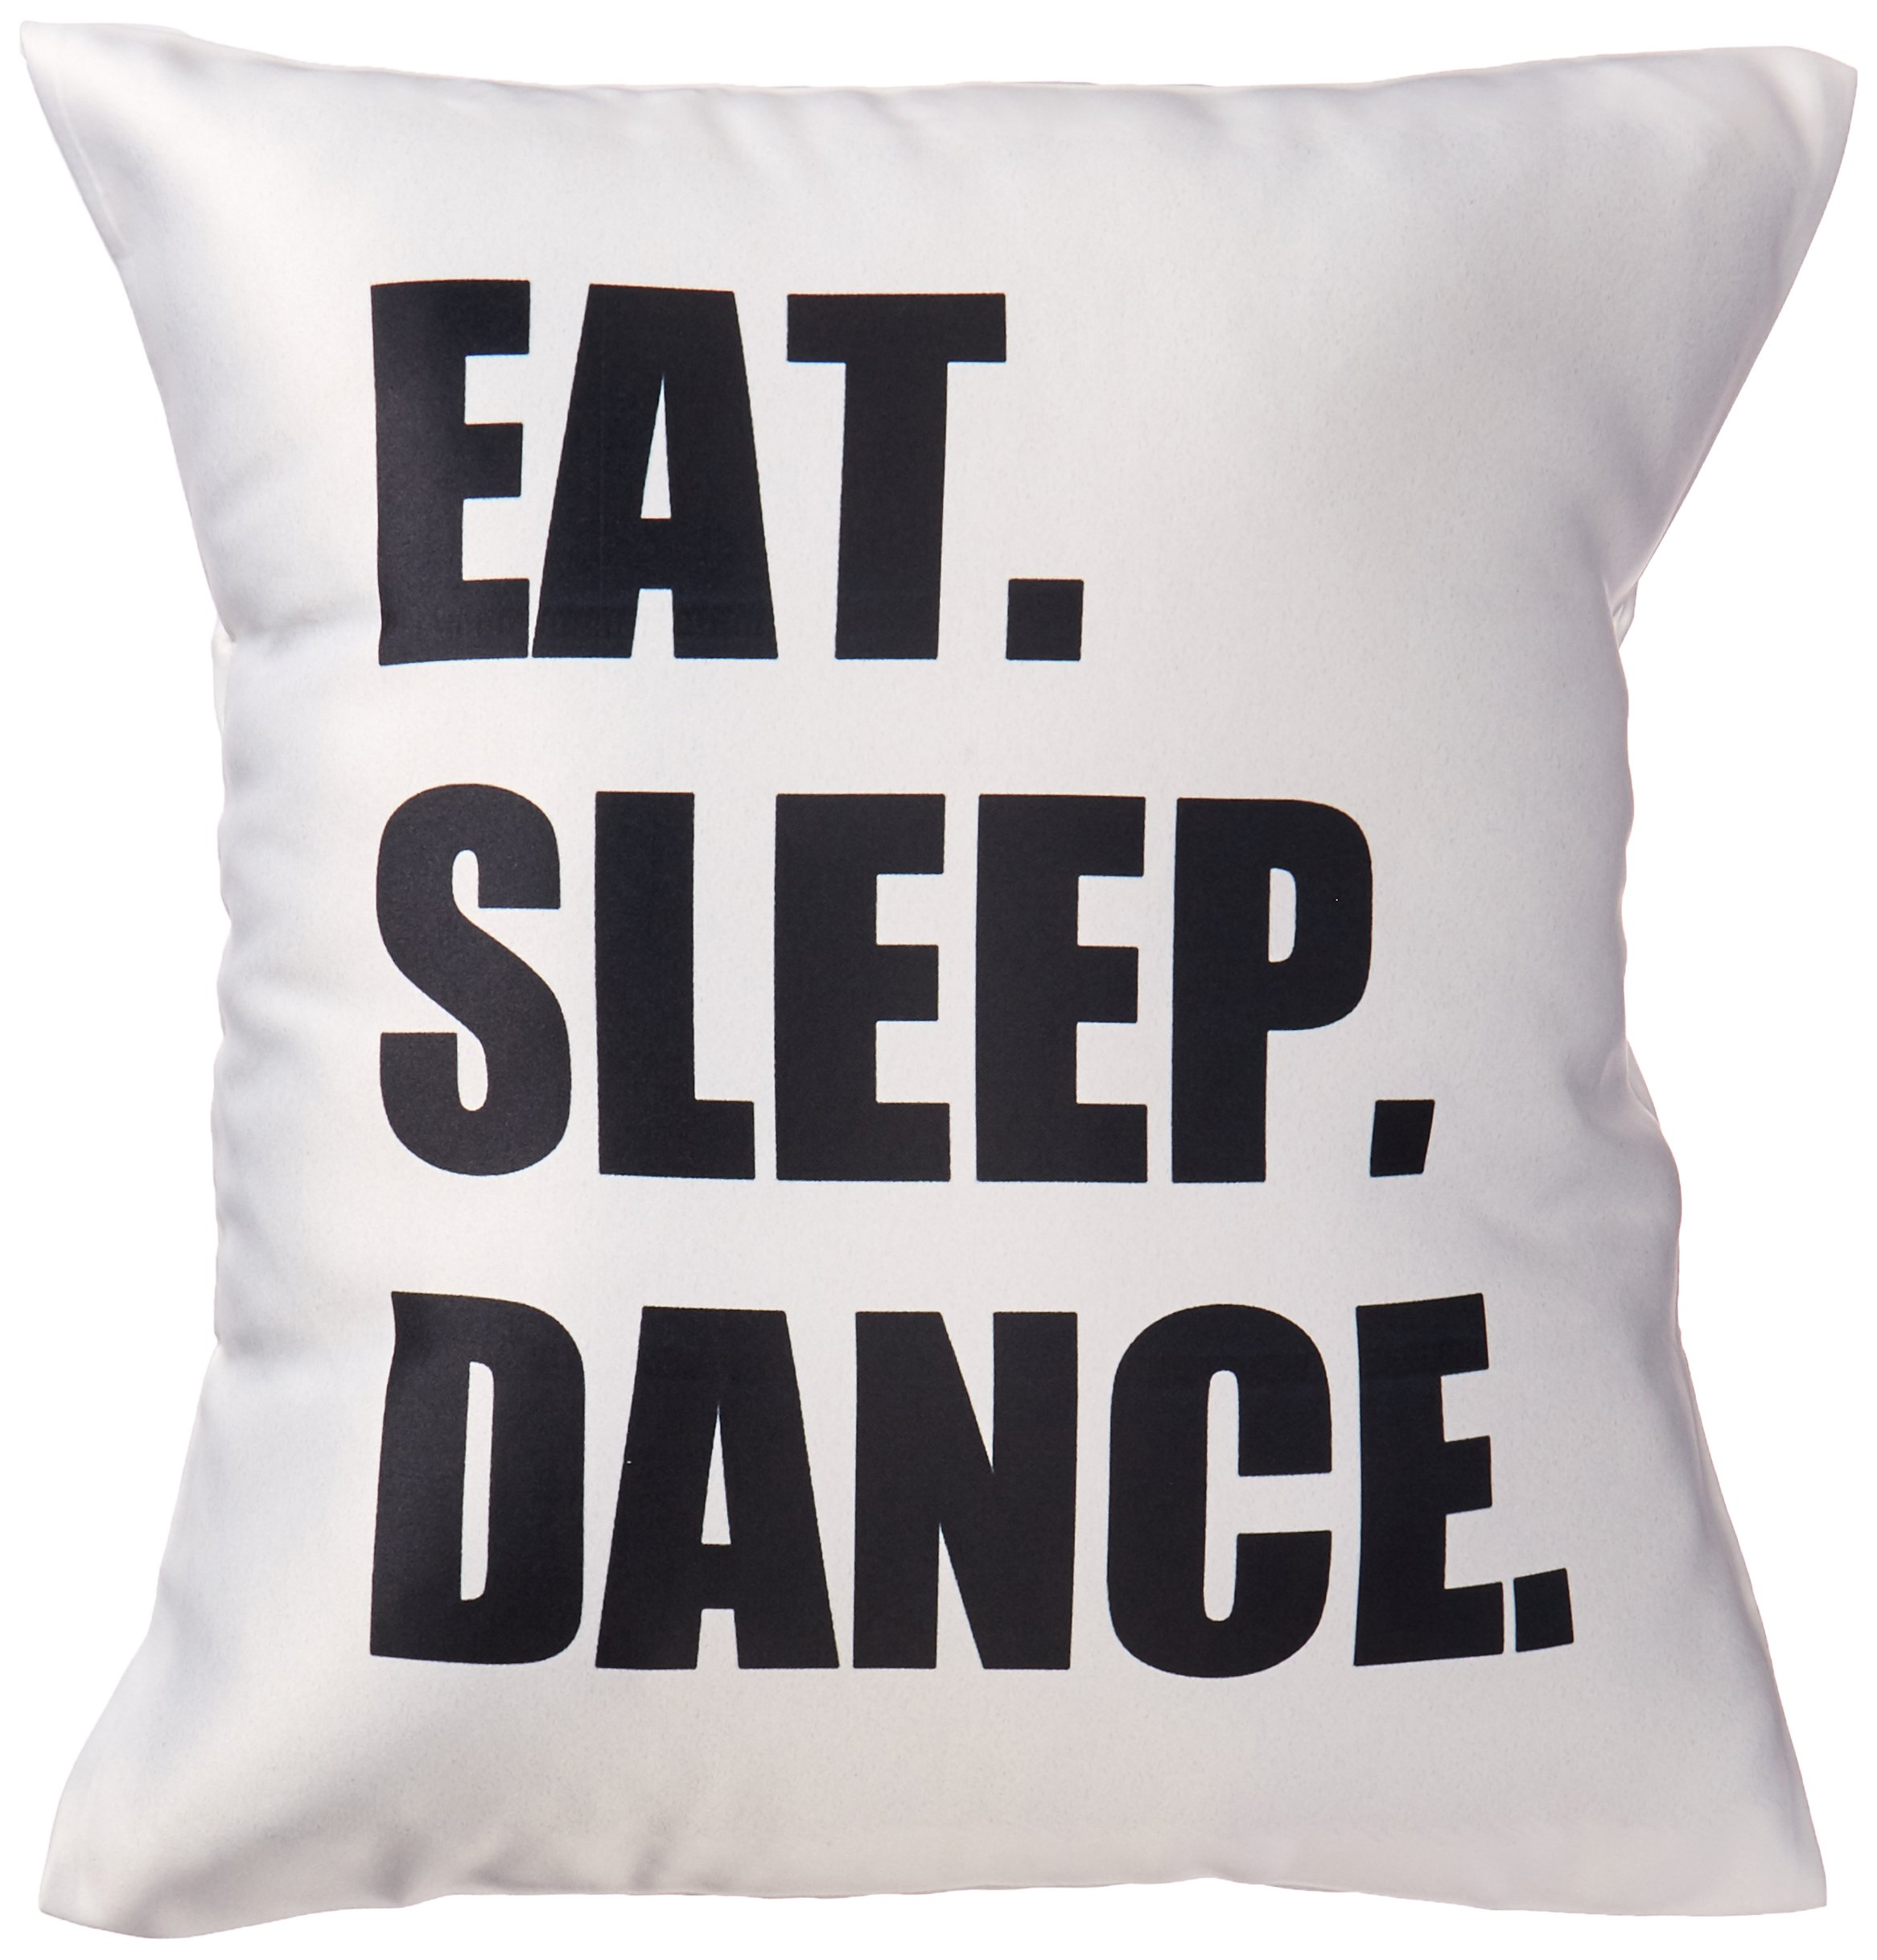 3dRose Eat Sleep Dance - passionate about dancing - fun text dancer gifts - Pillow Case, 16 by 16-inch (pc_180394_1)